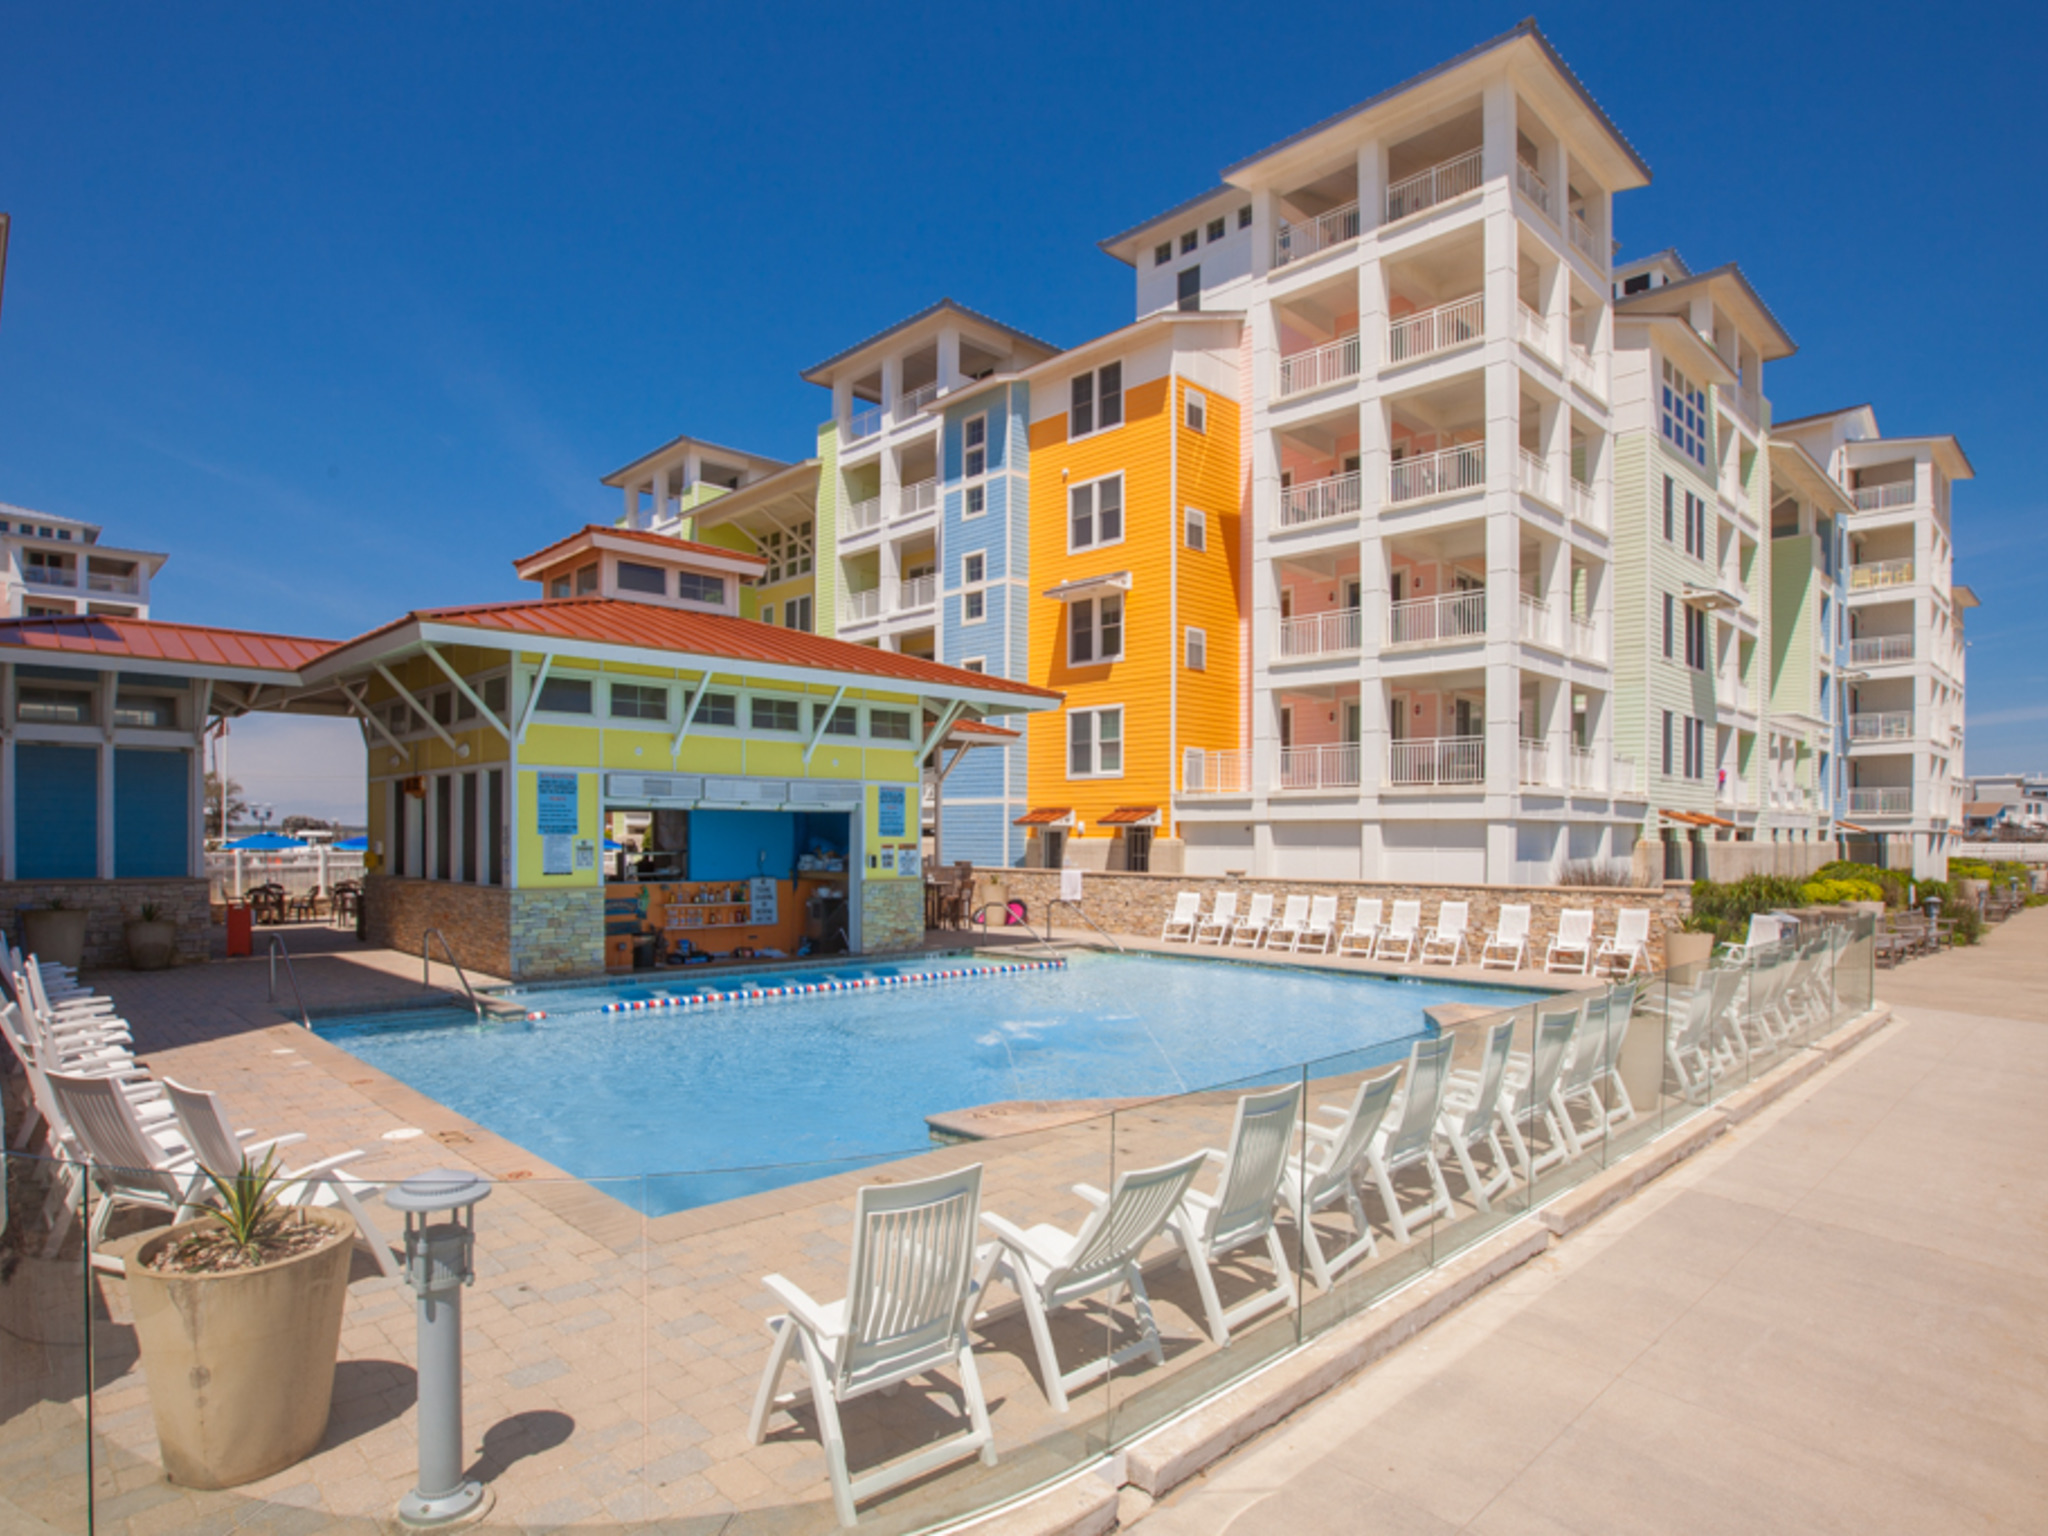 A307 7th heaven 3 bedroom condo virginia beach va - 3 bedroom suites in virginia beach ...